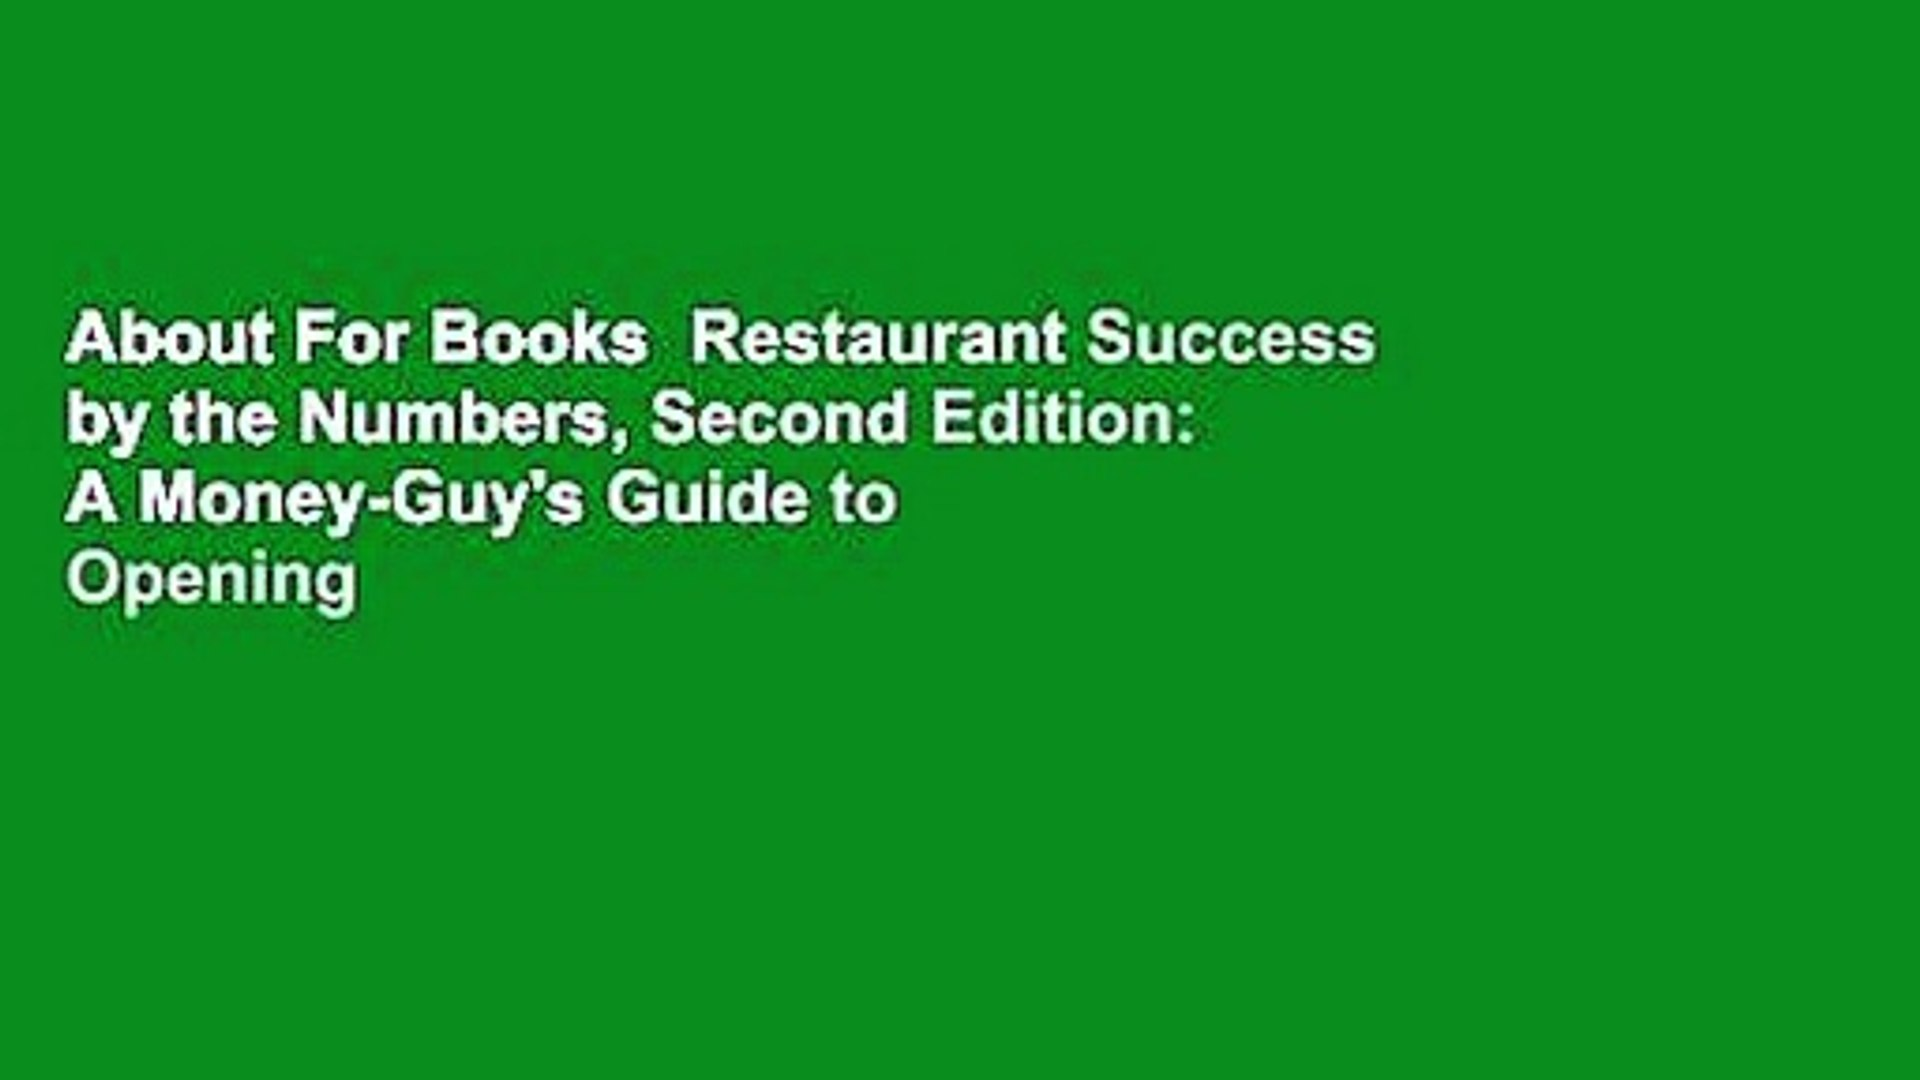 About For Books Restaurant Success By The Numbers Second Edition A Money Guy S Guide To Opening